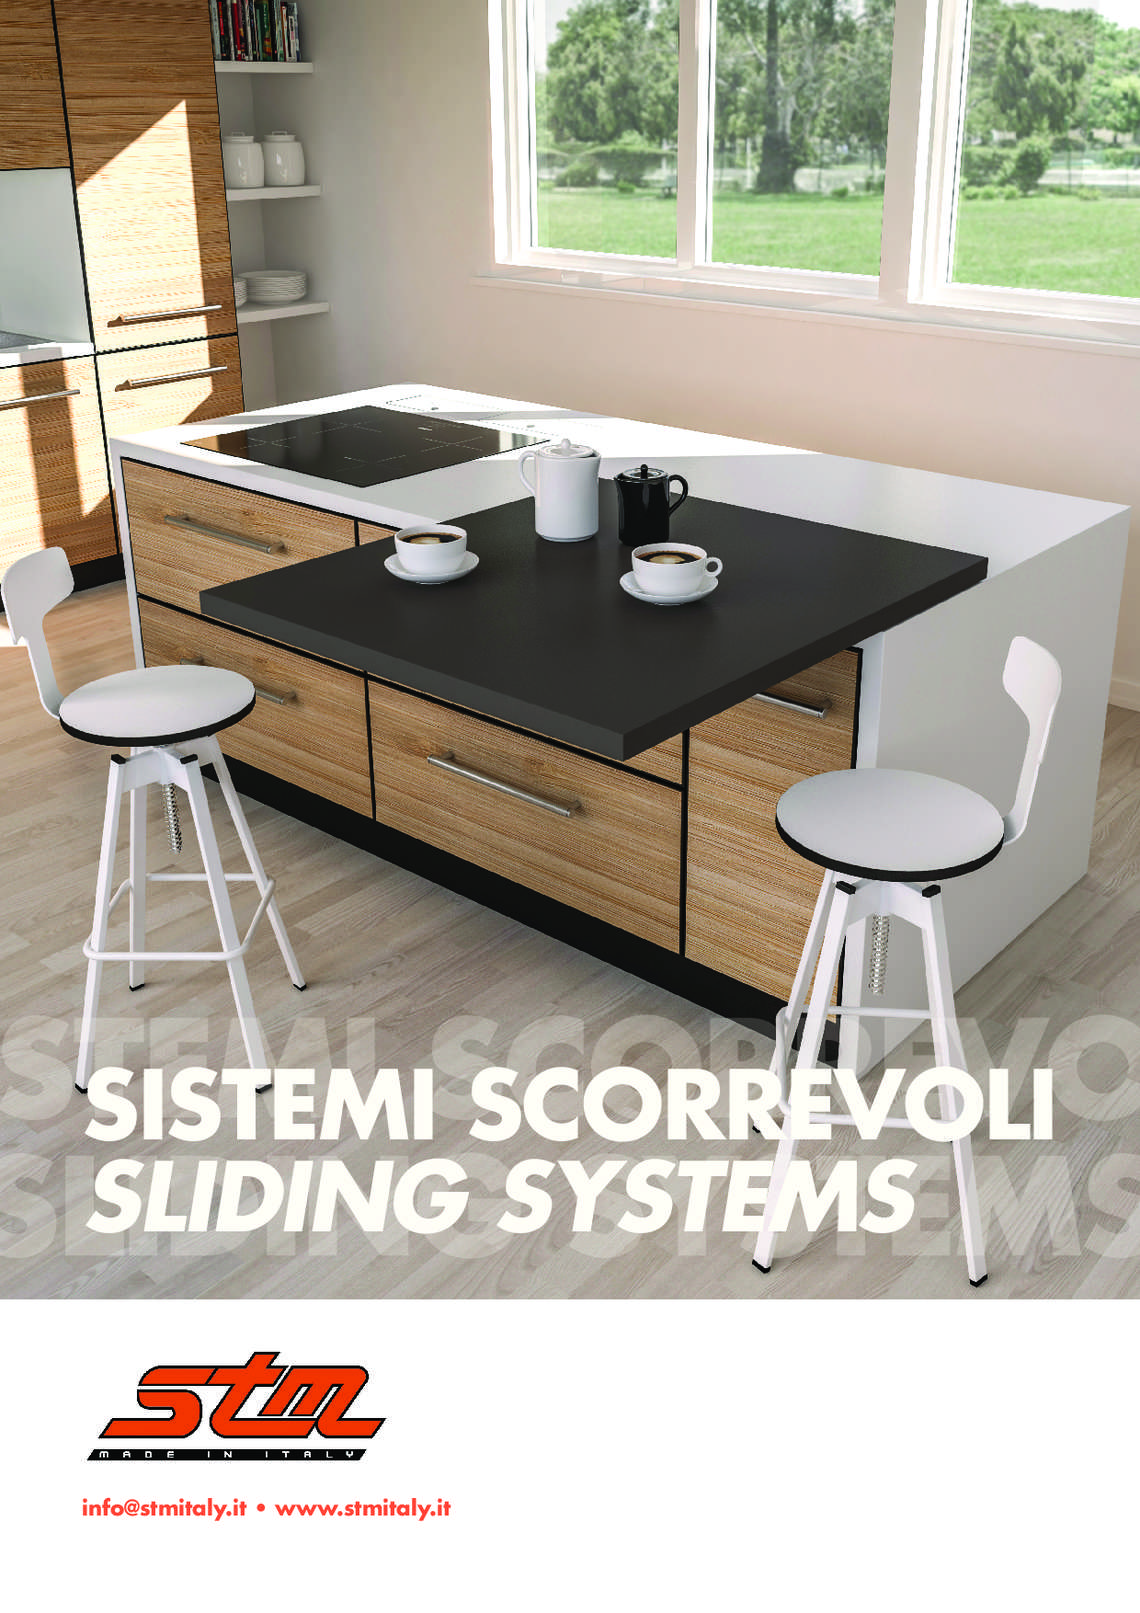 STM 2018 Sliding Systems Catalogue